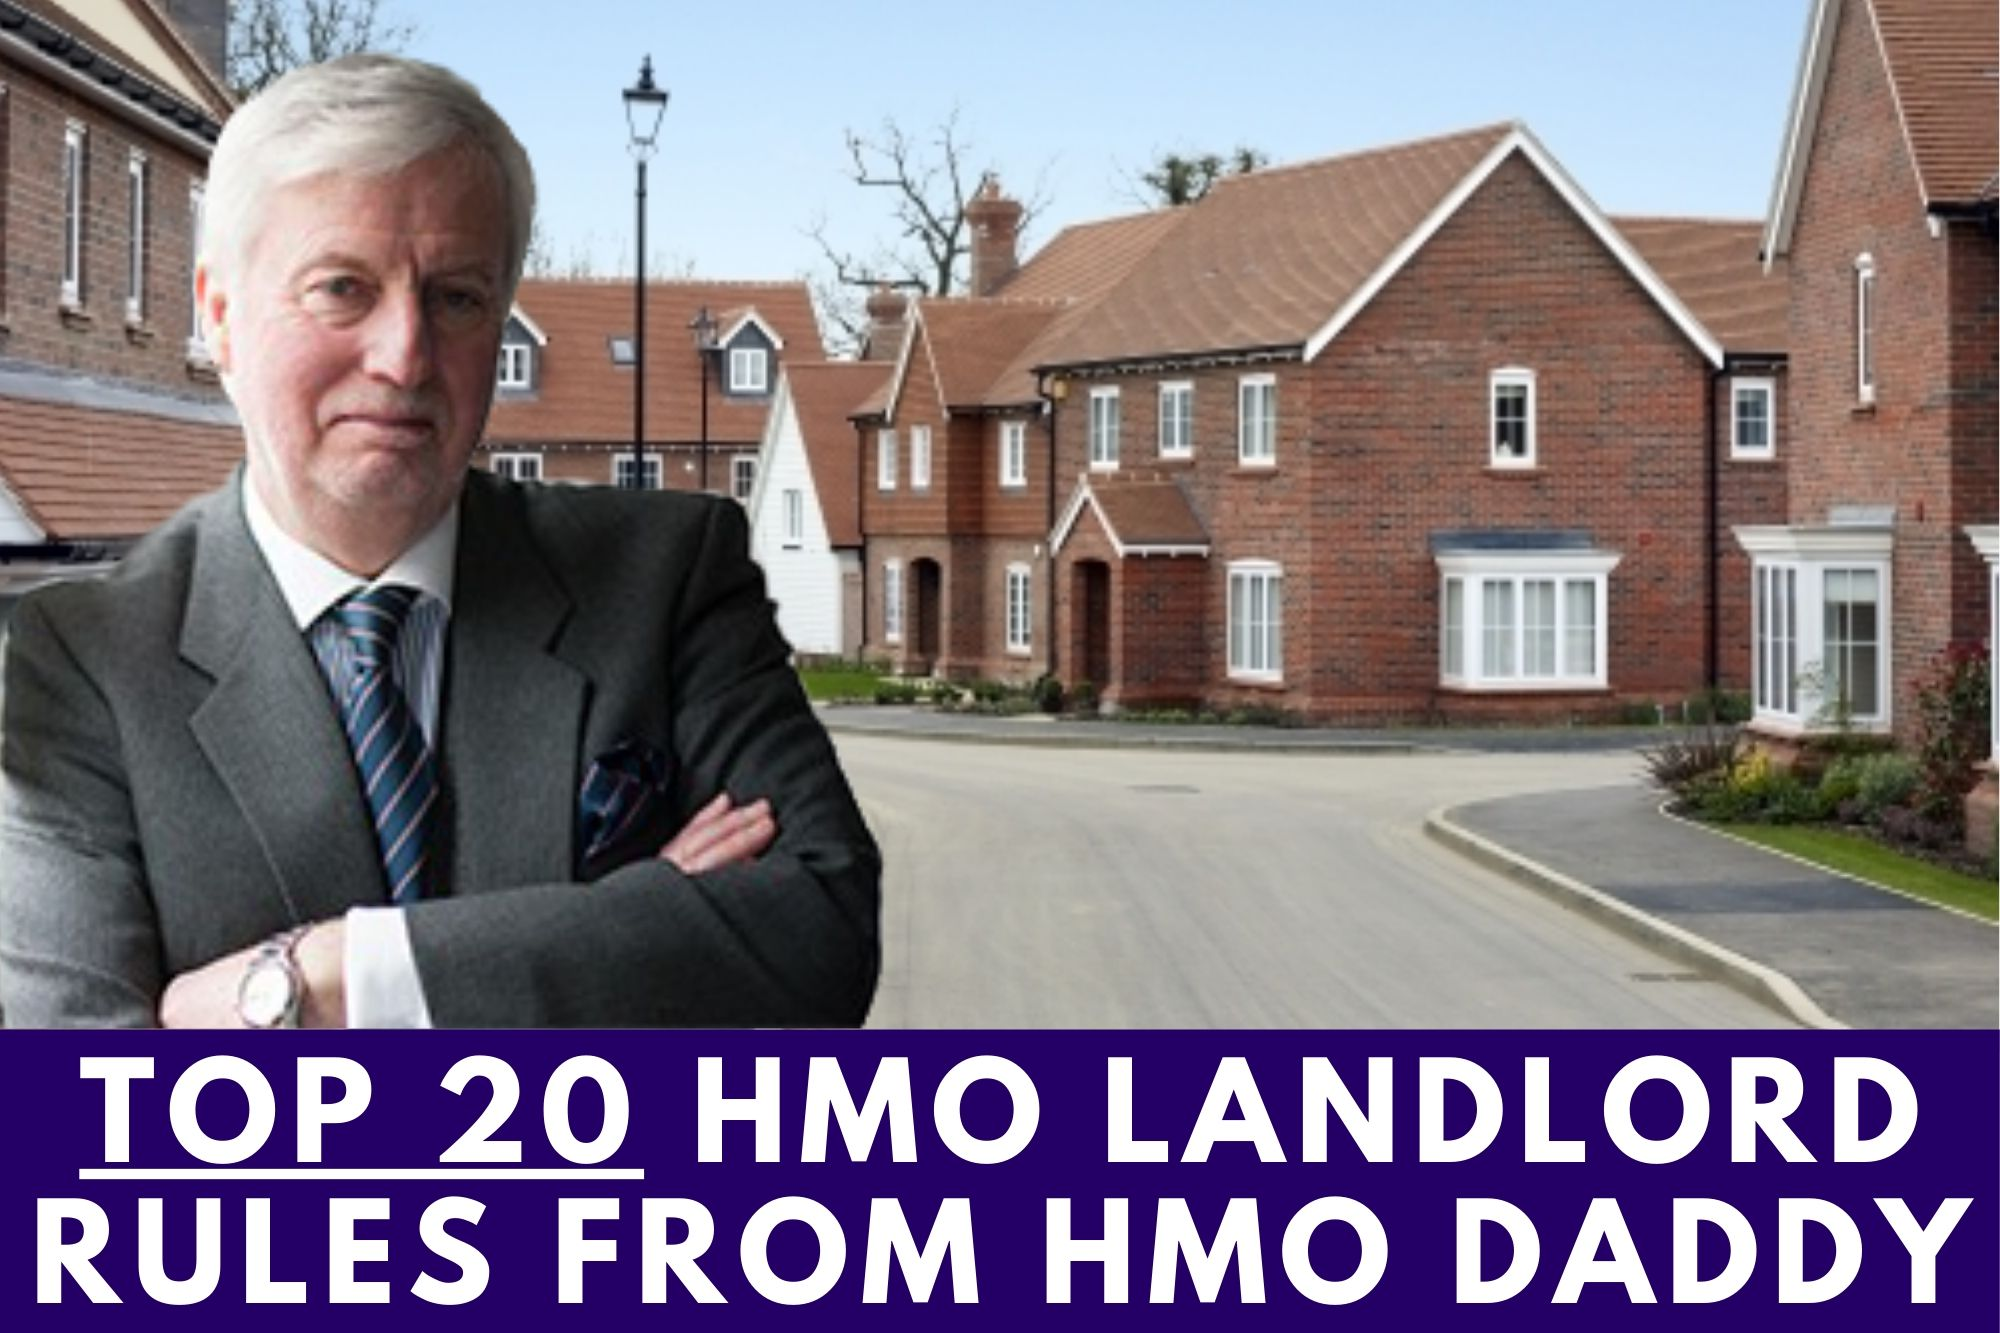 Top 20 HMO Landlord Rules from HMO Daddy